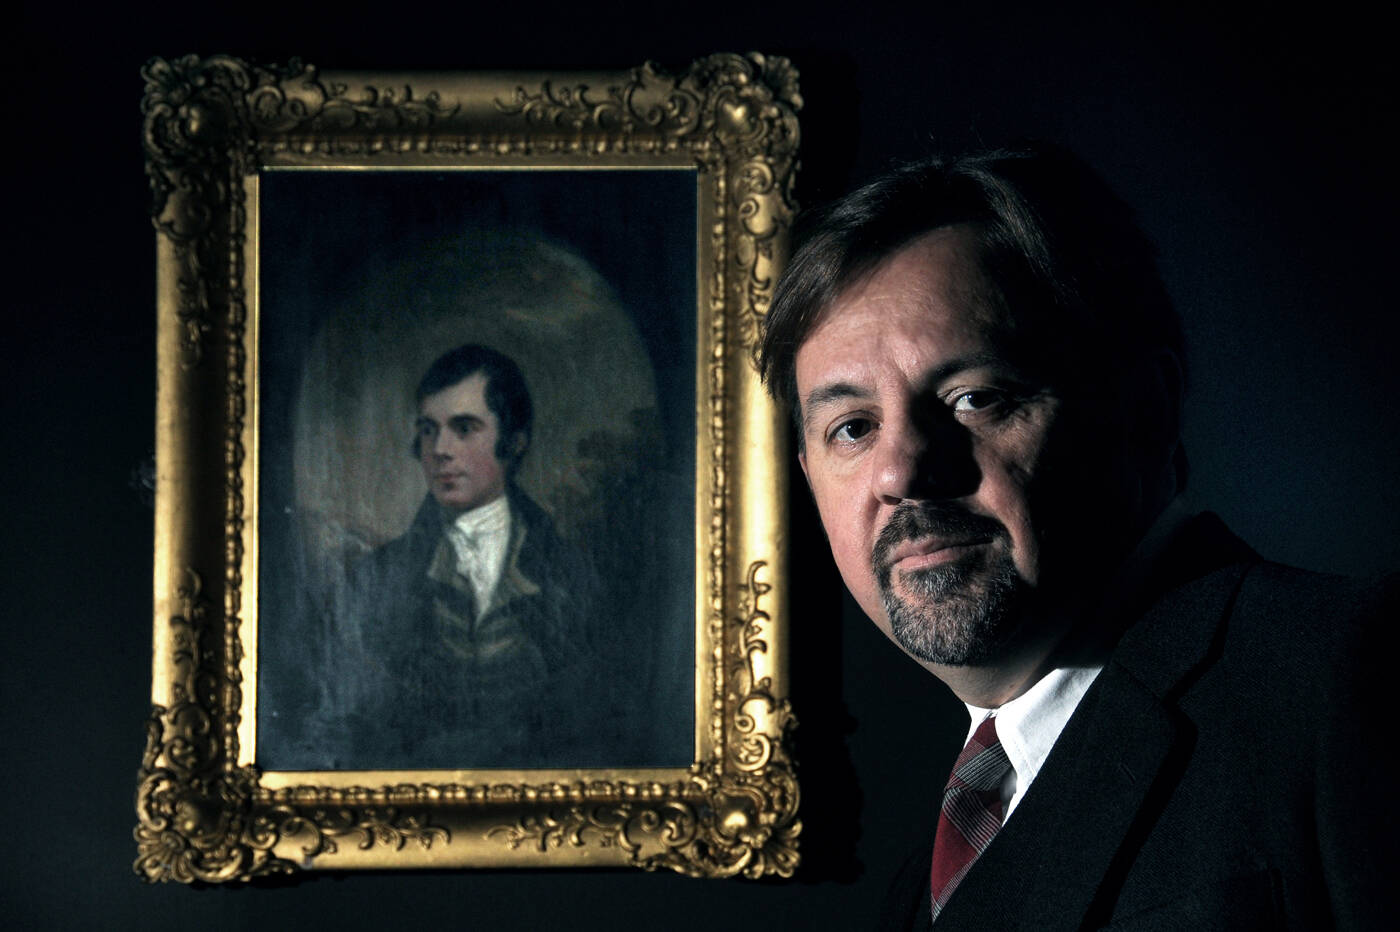 Rab Wilson standing next to a portrait of Robert Burns